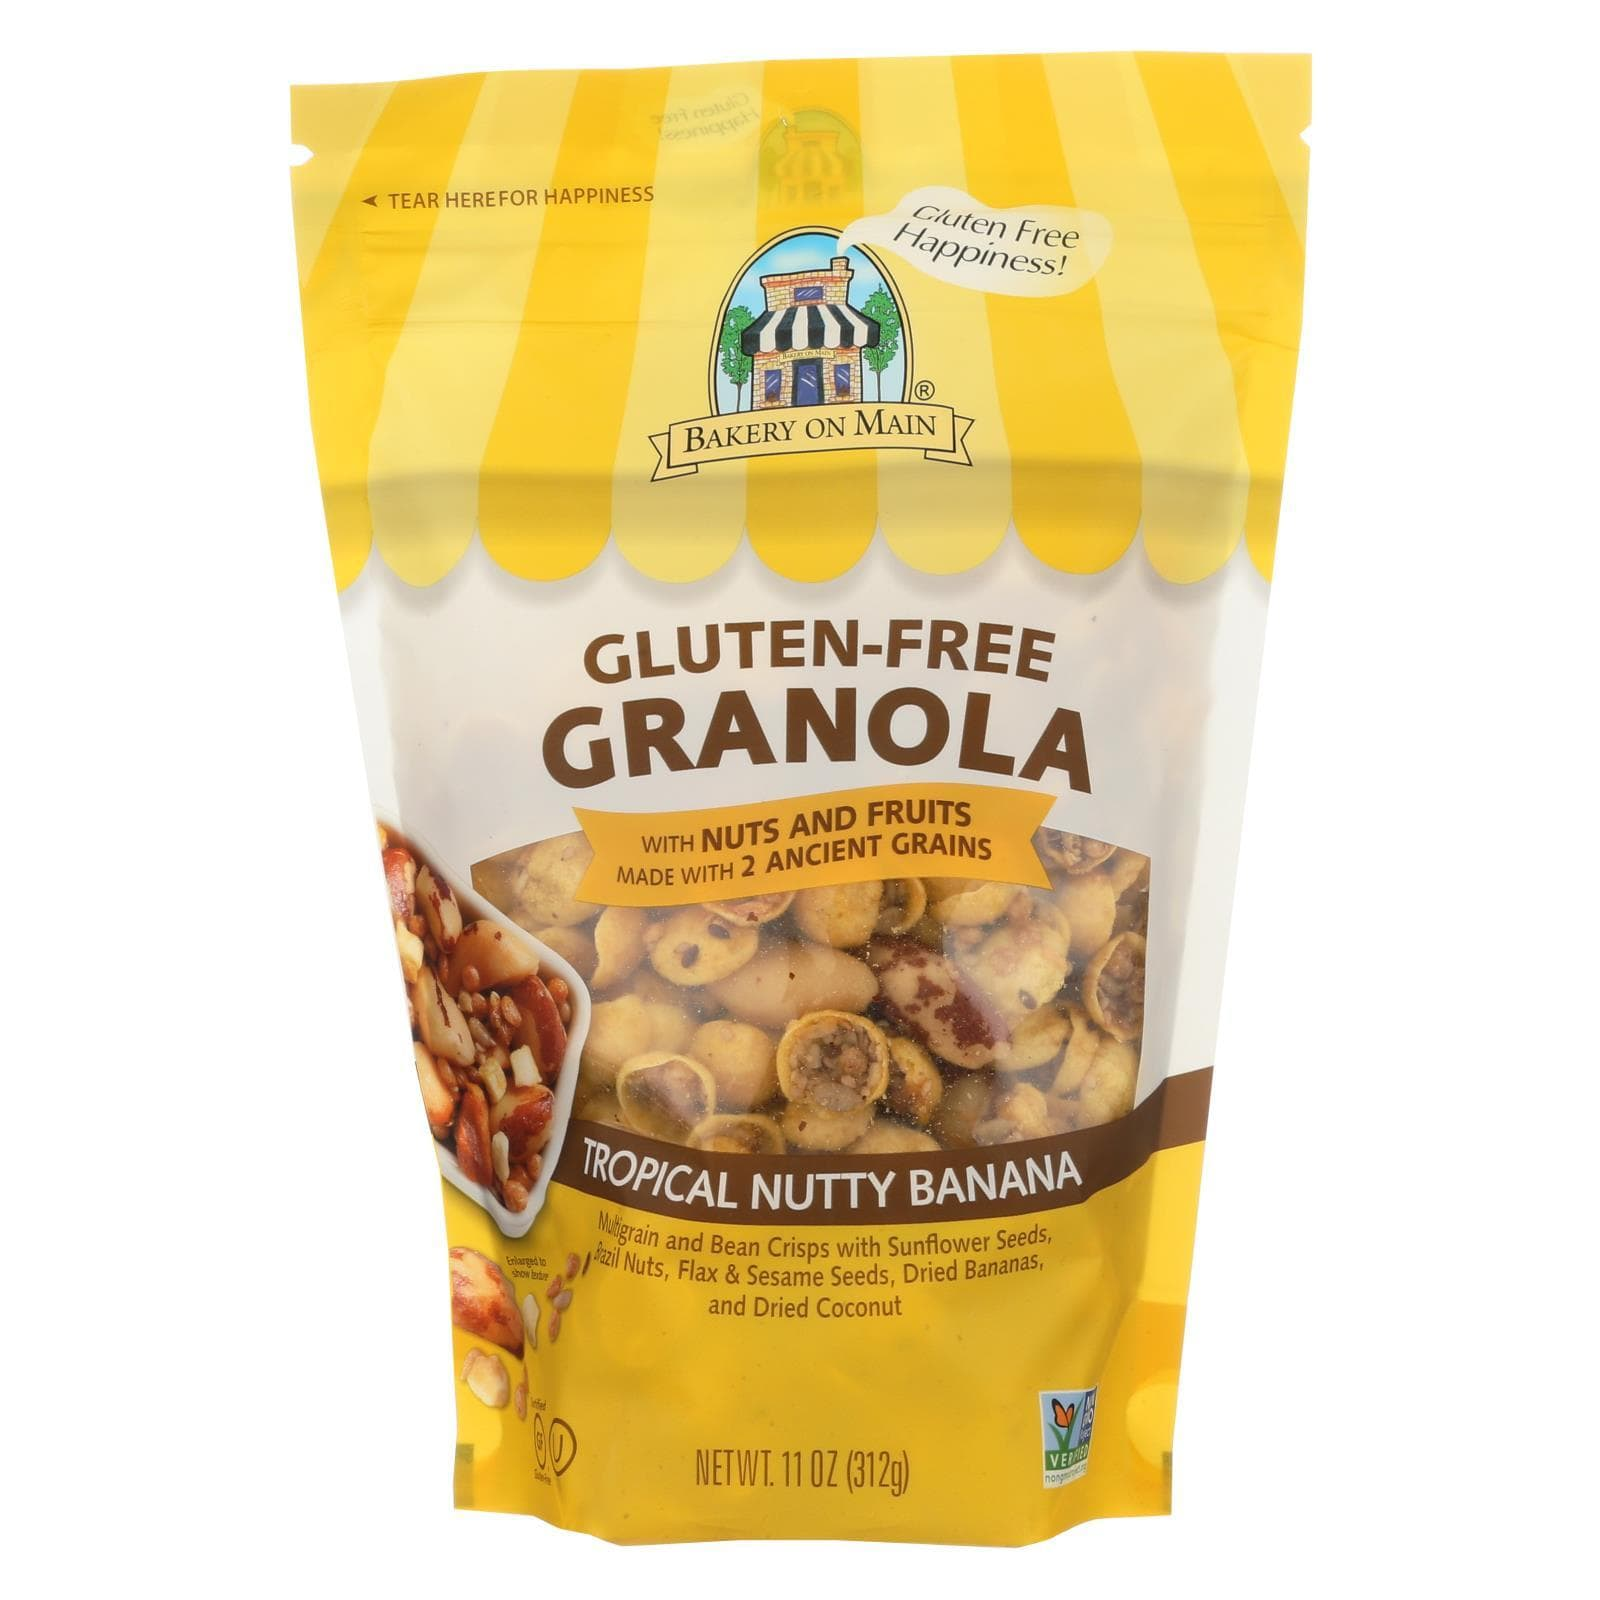 Bakery On Main Nuts, Seeds & Granola Bakery On Main Gluten Free Granola - Rainforest - Case Of 6 - 12 Oz.